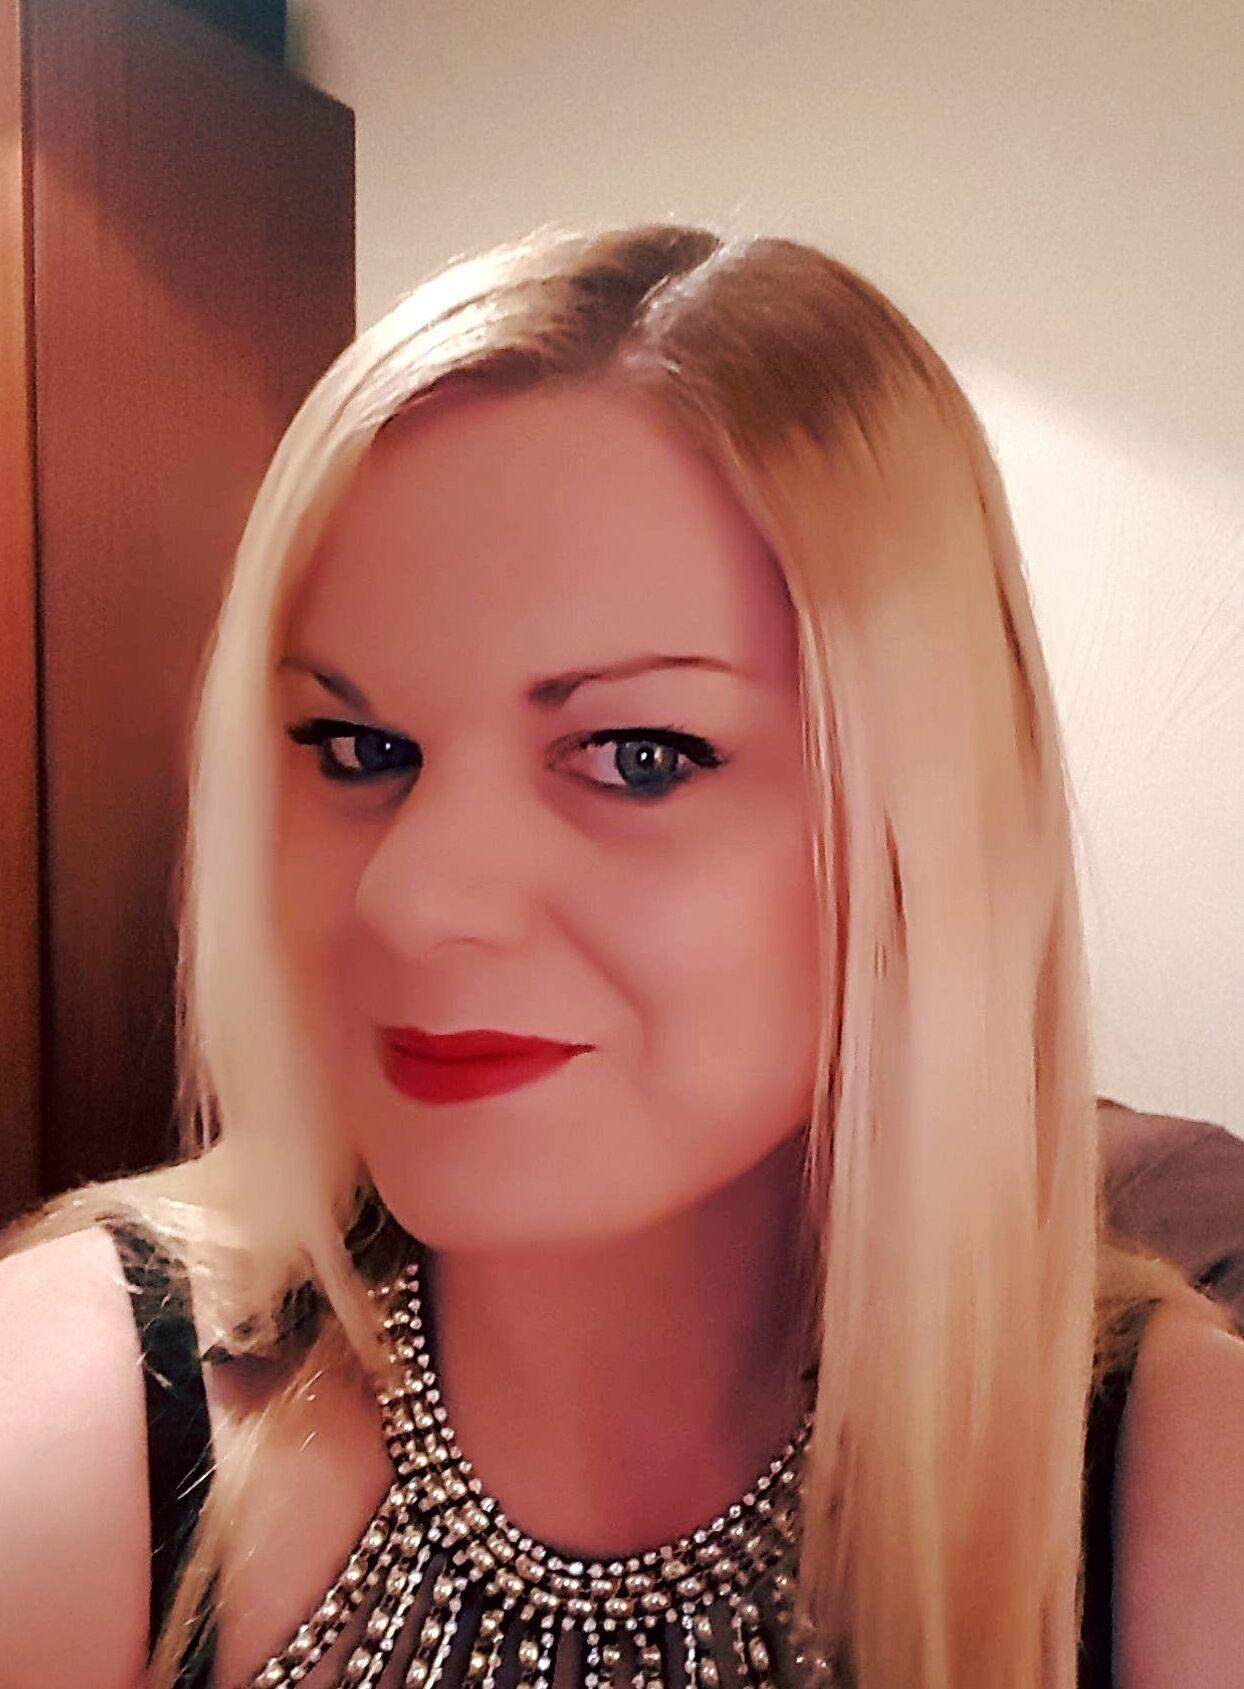 meet old forge singles Meet sweden singles at swedish dating net 49k likes   provides a free dating service for swedish singles meet online.